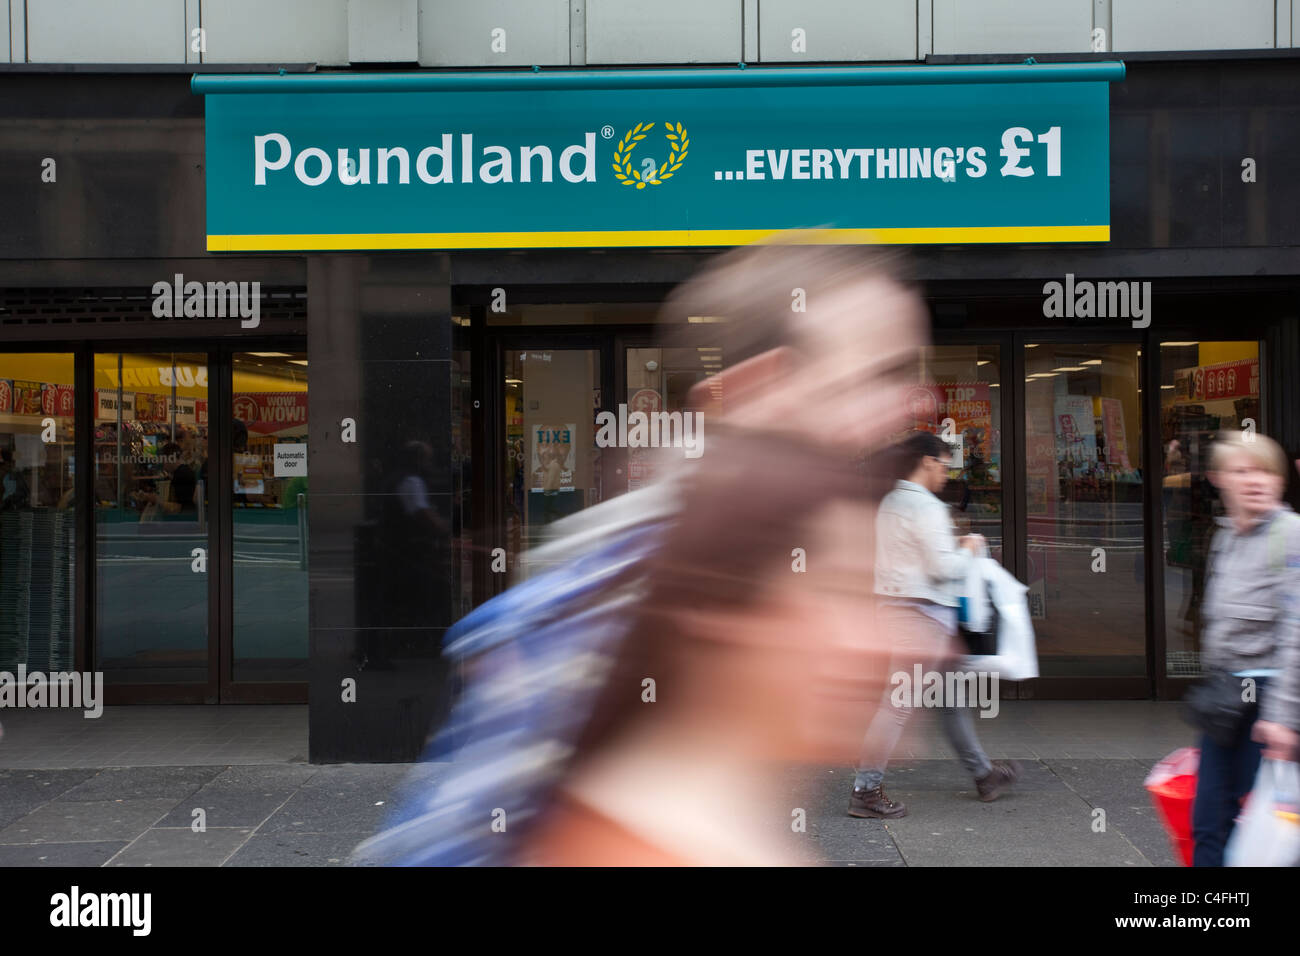 Poundland British based variety store chain selling every item in its stores for £1.Photo:Jeff Gilbert - Stock Image